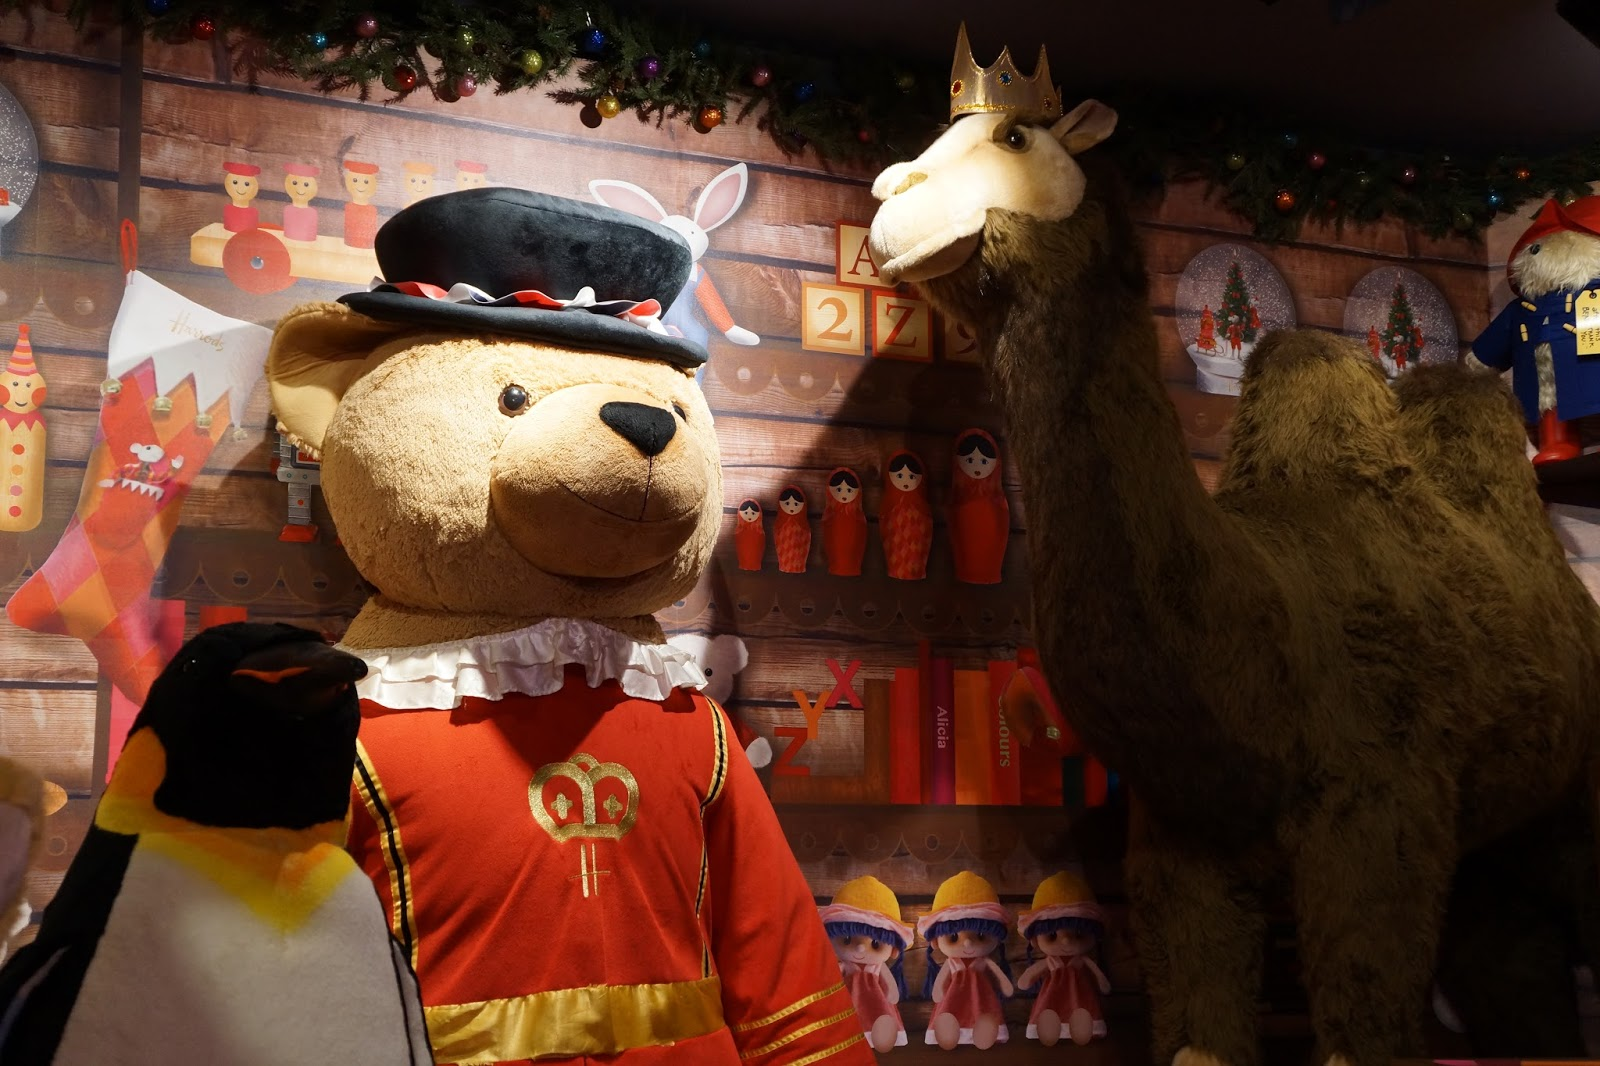 harrods christmas grotto 2015 big harrods teddy bear